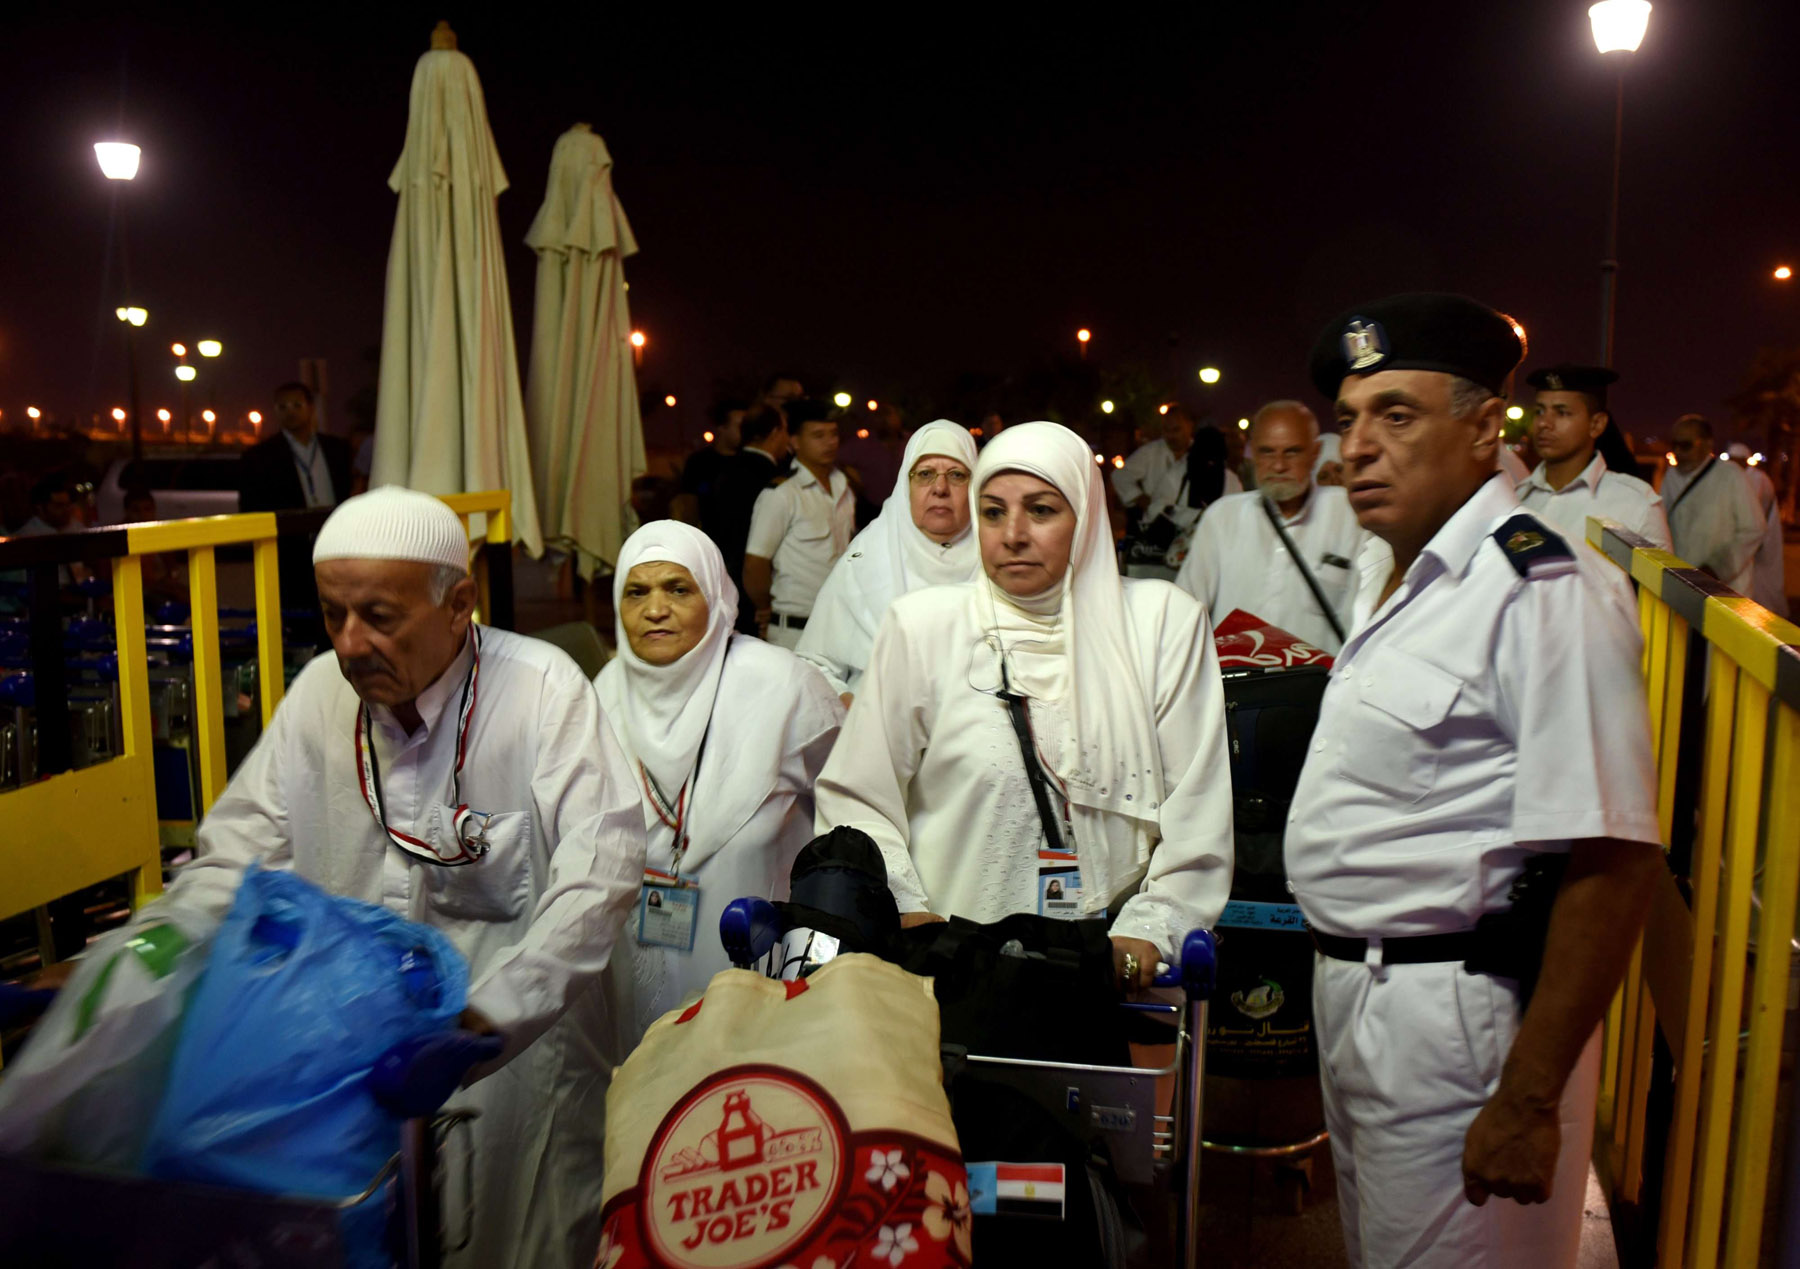 A dear wish. Egyptian pilgrims arrive at the Cairo International Airport for departure to the haj in Mecca and Medina in Saudi Arabia. 	(AFP)